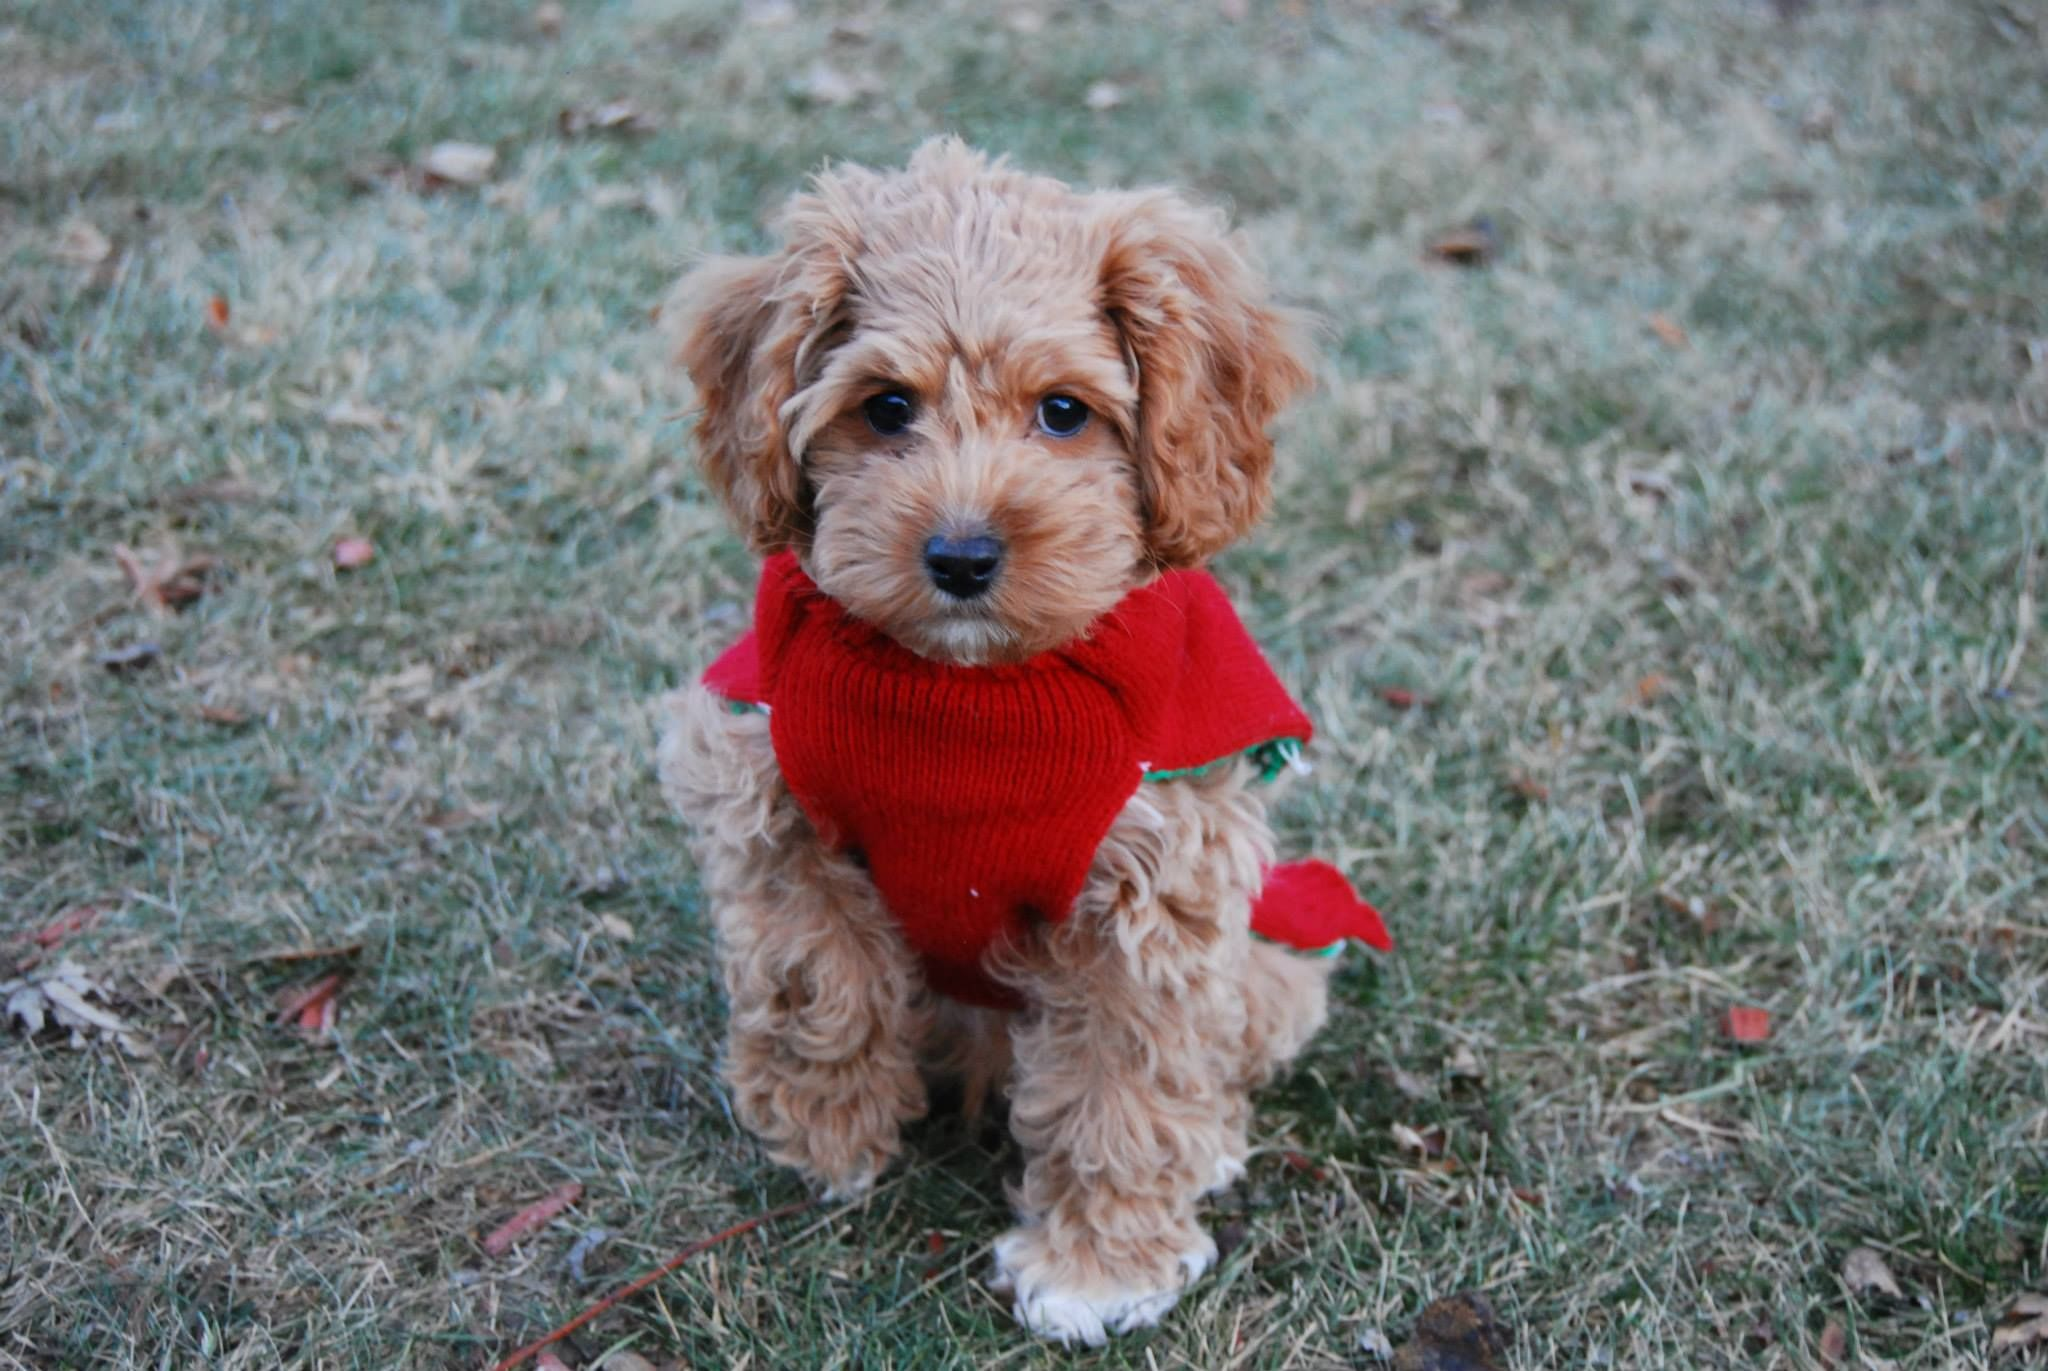 Cockapoo adorable puppy apricot cute rylee poodle